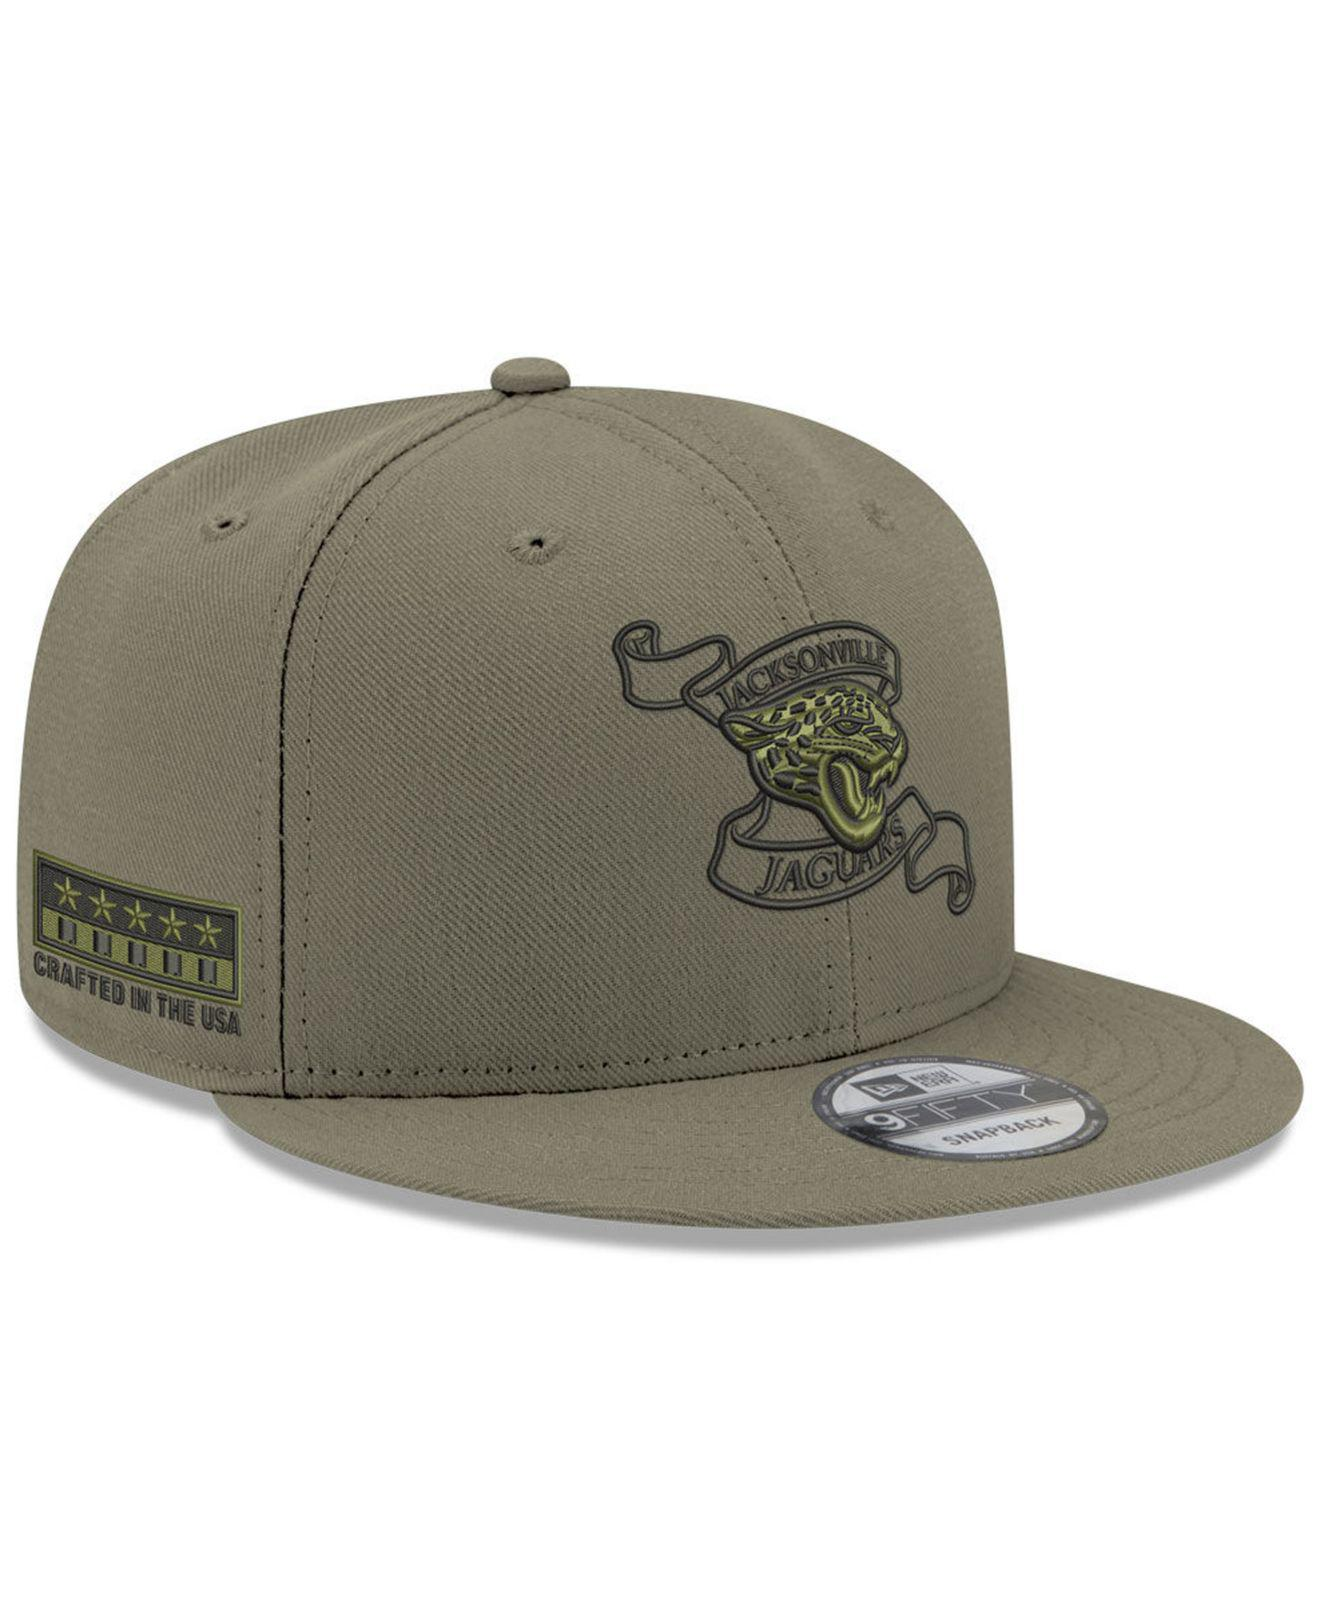 2c9c098da70 Lyst - KTZ Jacksonville Jaguars Crafted In The Usa 9fifty Snapback ...